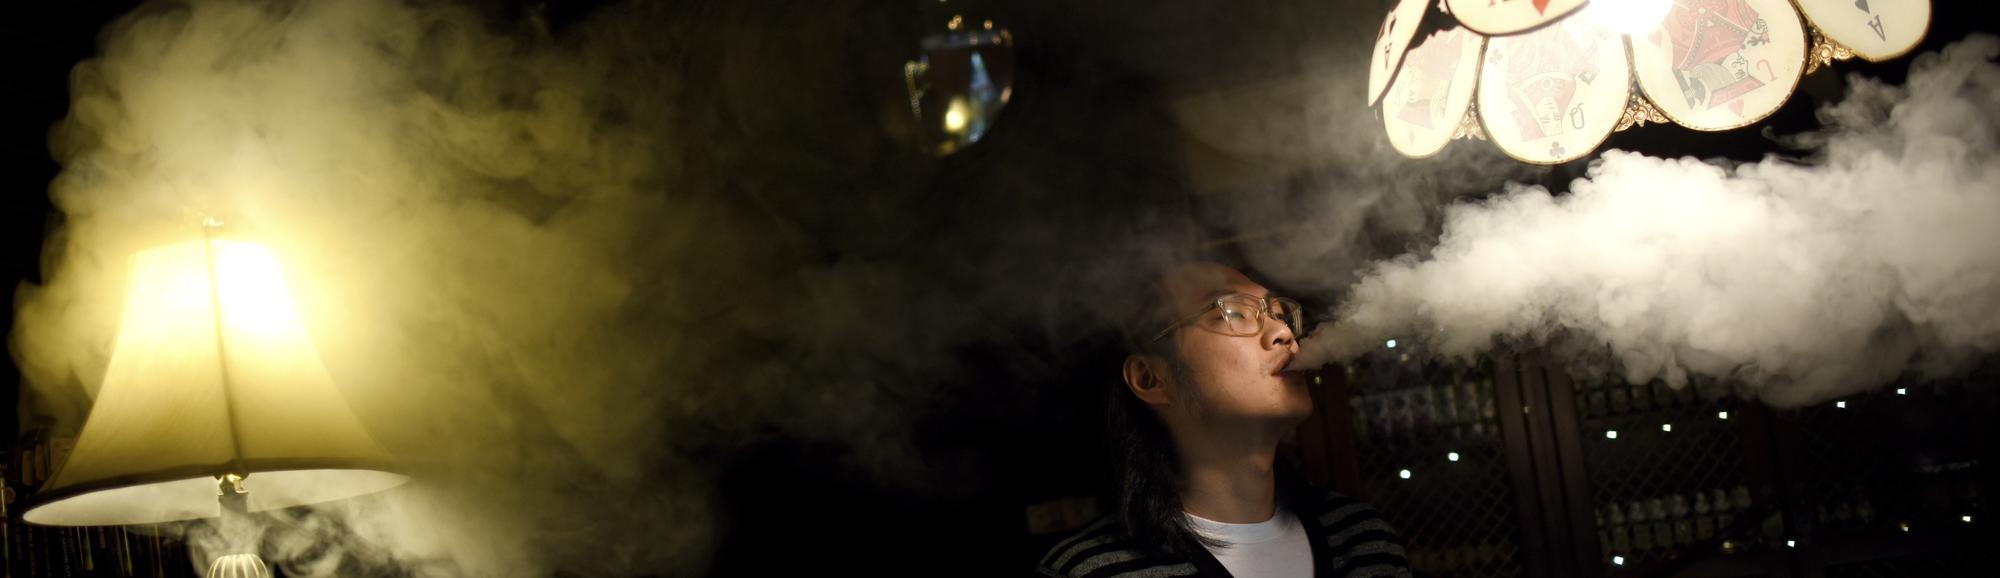 Public Health Experts Say Tobacco Industry Up to Old Tricks in Pushing E-Cigarettes